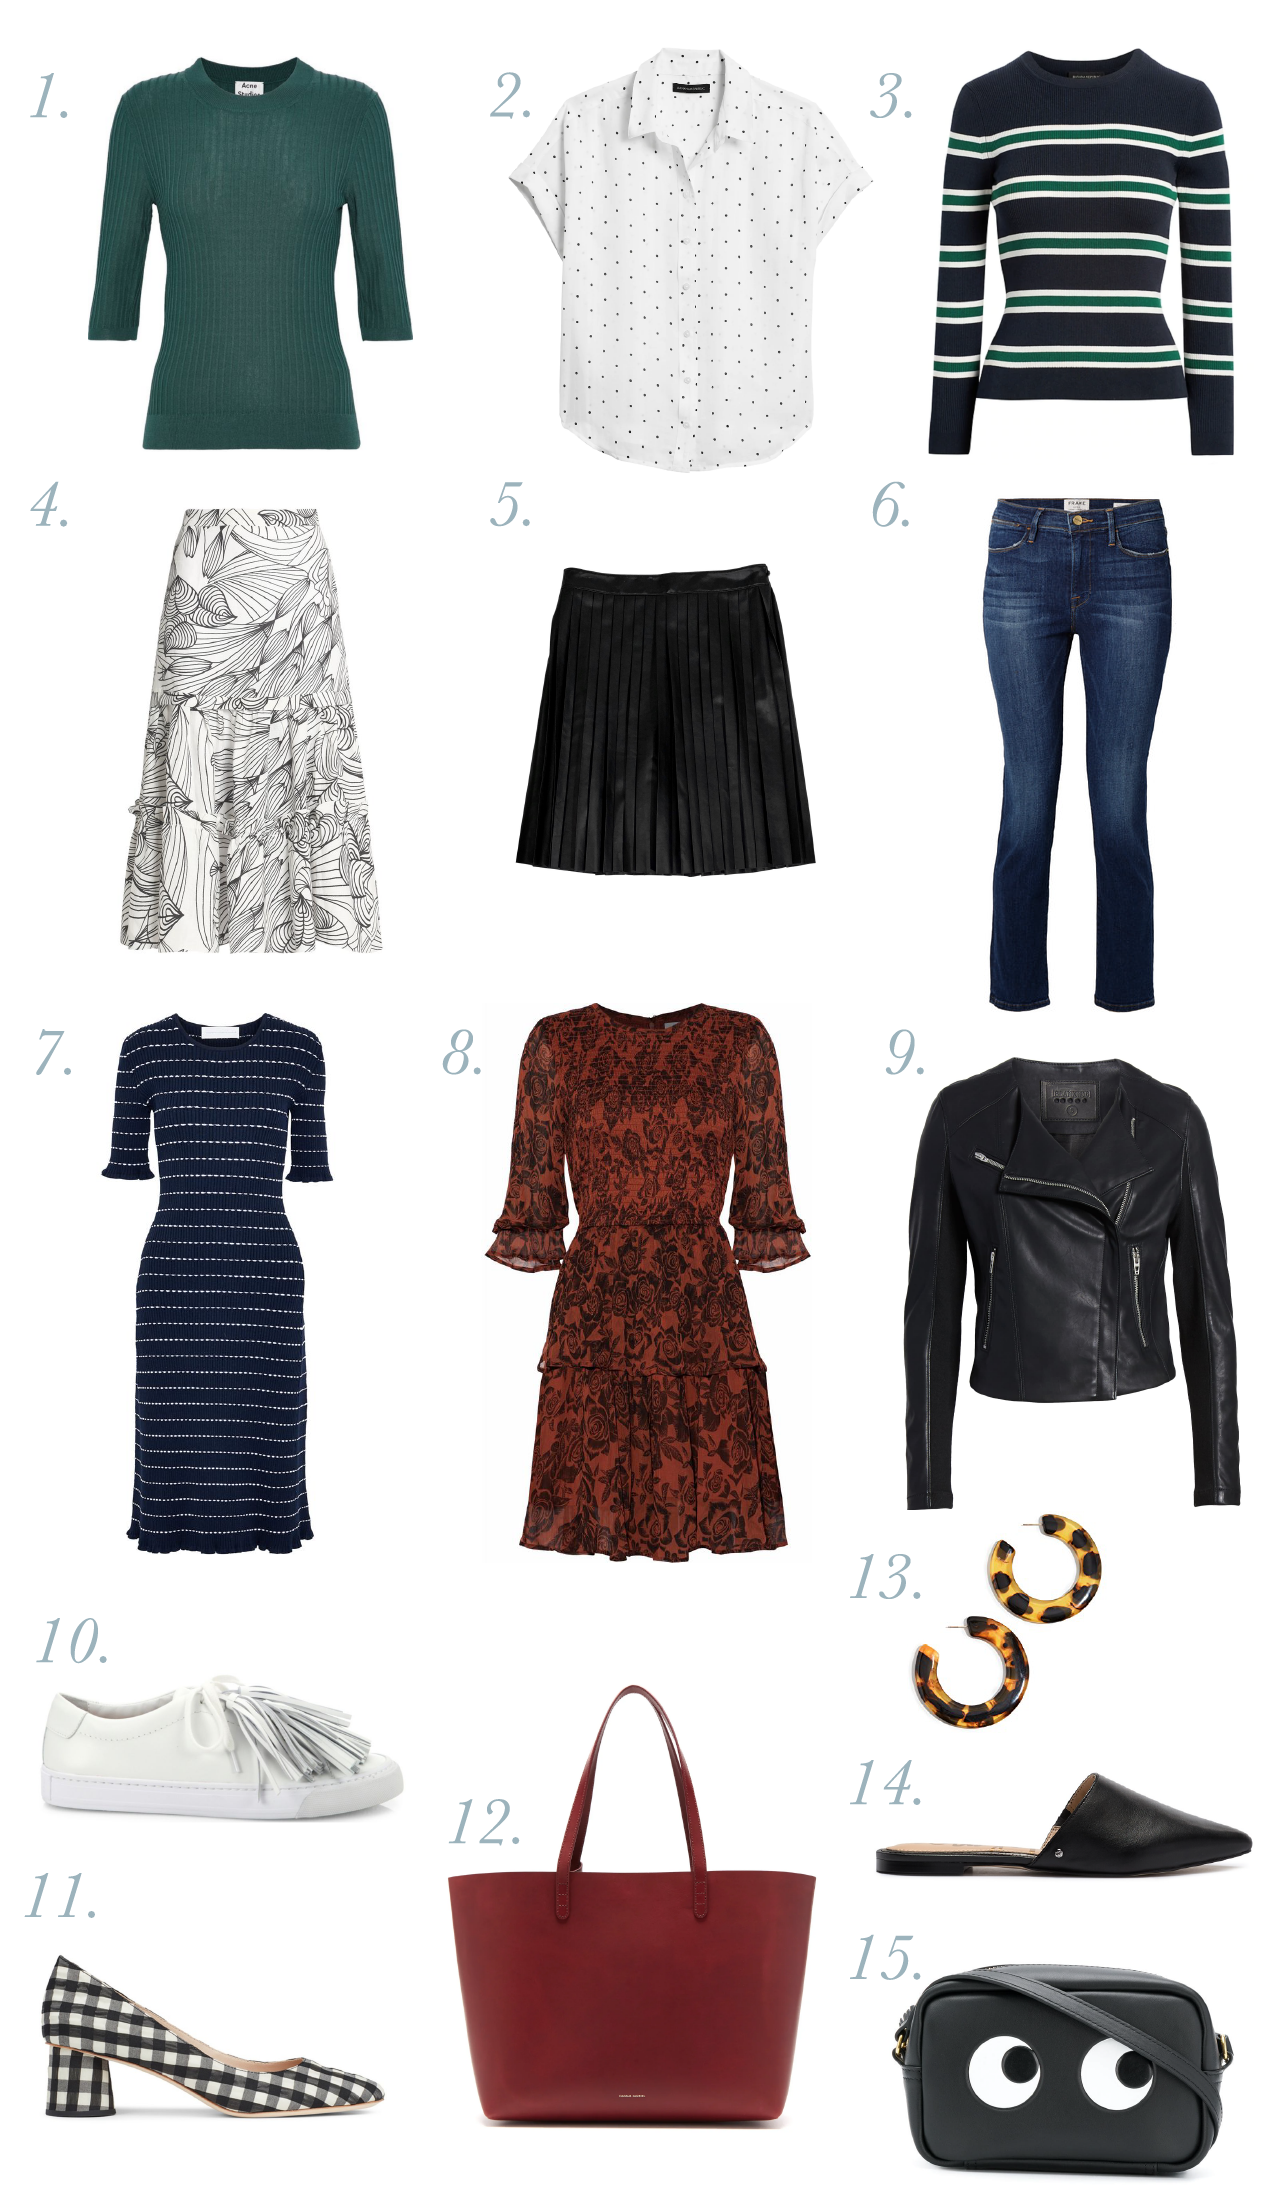 How to Pack Light for Europe in the Fall | Packing a fall travel capsule wardrobe is one of my favorite ideas for creating mix-and-match outfits from your closet. Whether you're traveling for ten days or ten weeks, this travel capsule guide will help you travel light and feel stylish on your next trip. #travelcapsulewardrobe #packinglight #travelinstyle